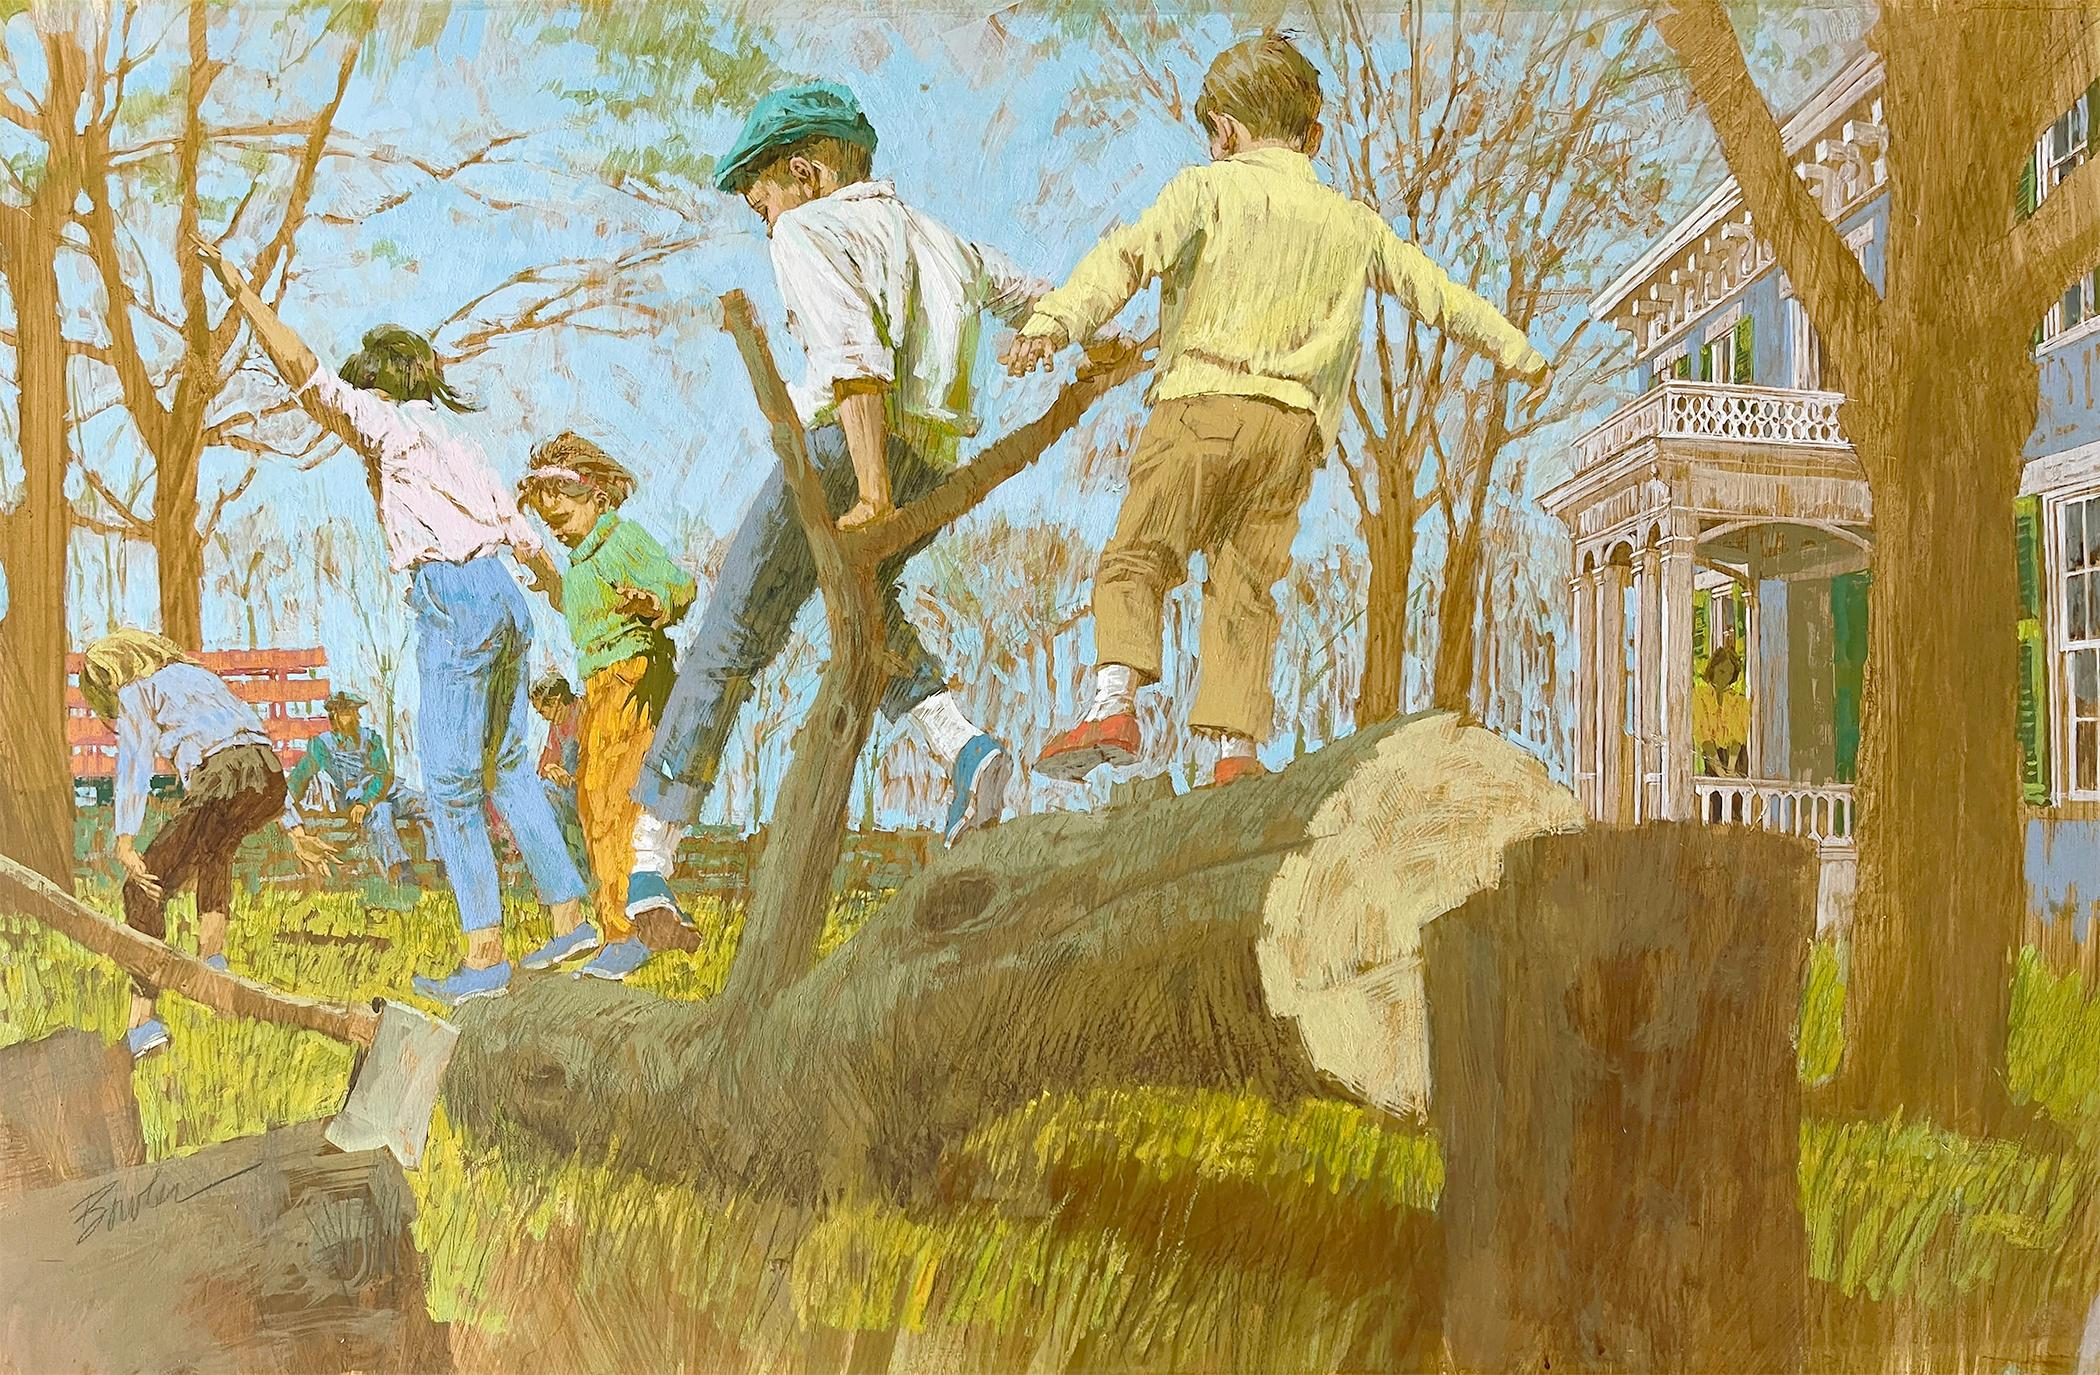 The Tree Cutters - Children Playing on a Fallen Tree - Saturday Evening Post?